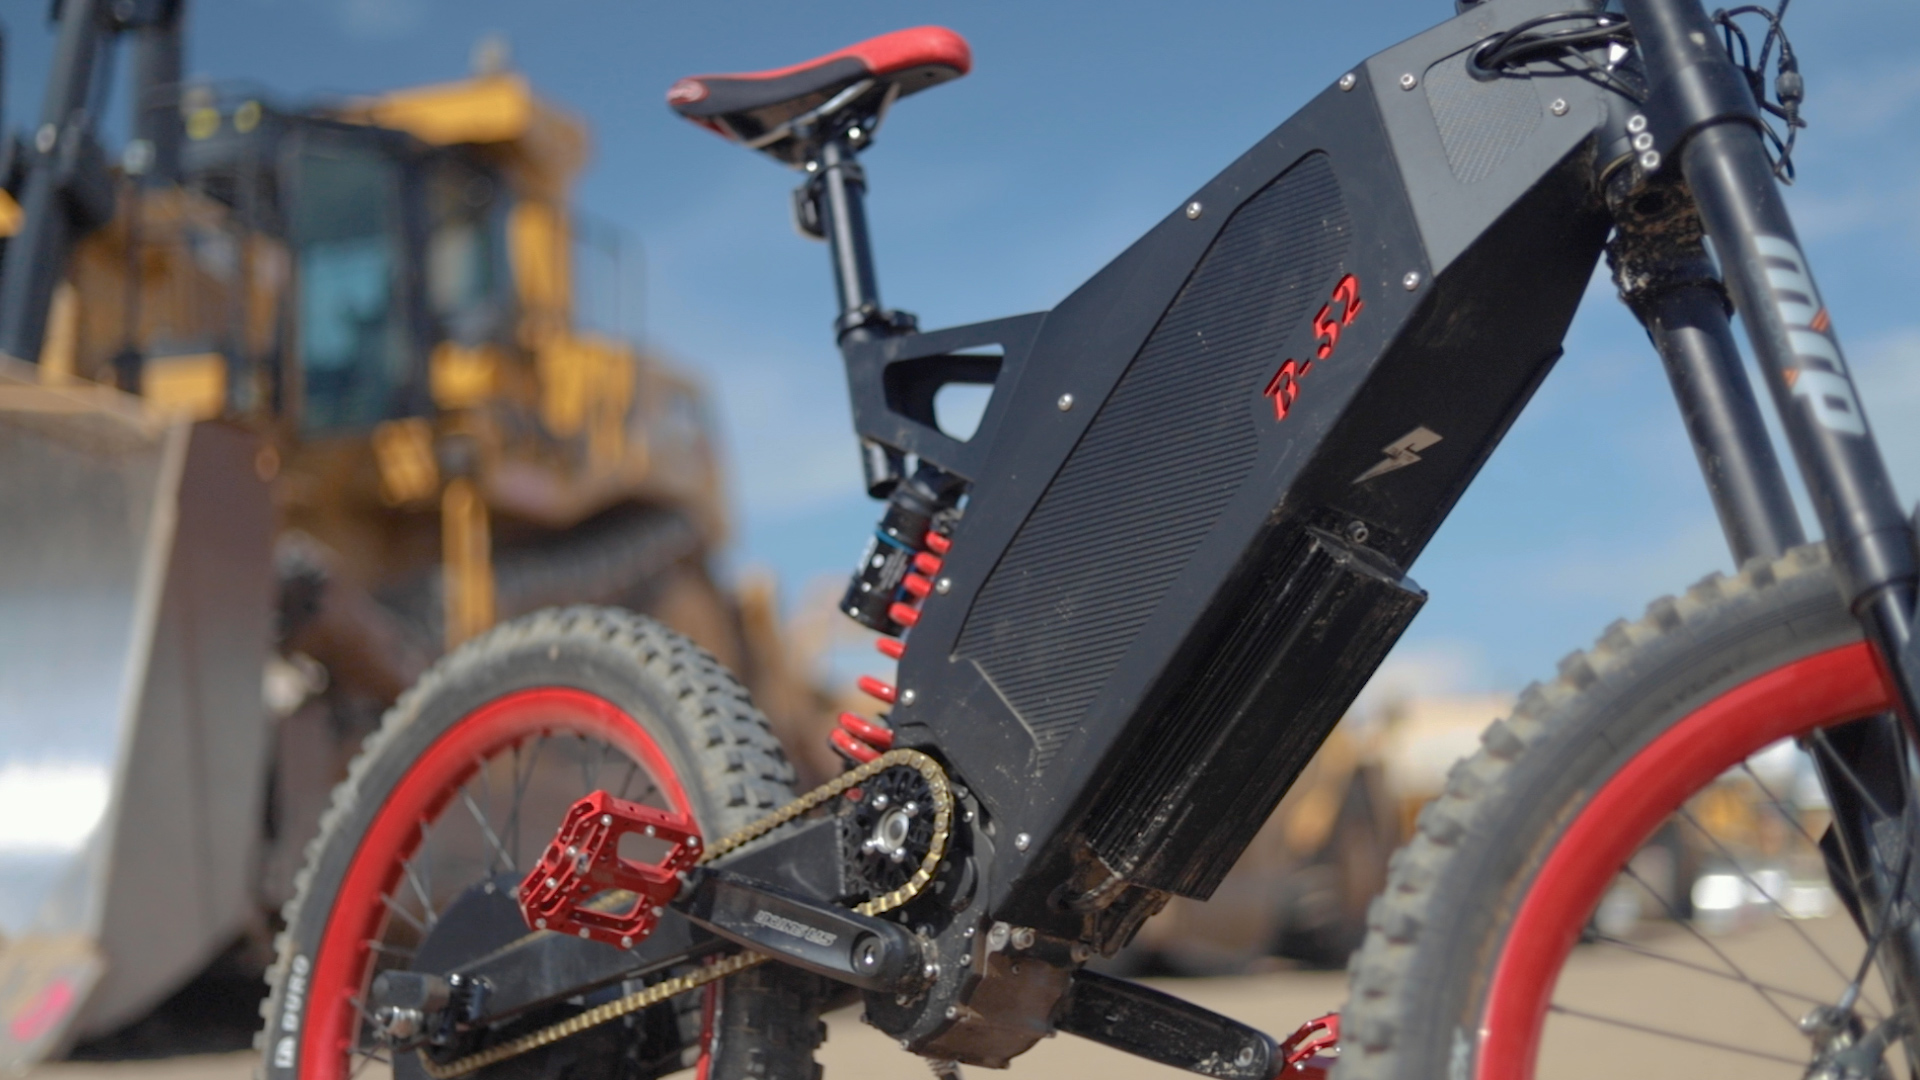 Stealth B-52 Bomber electric bike review: 6,200 watts of